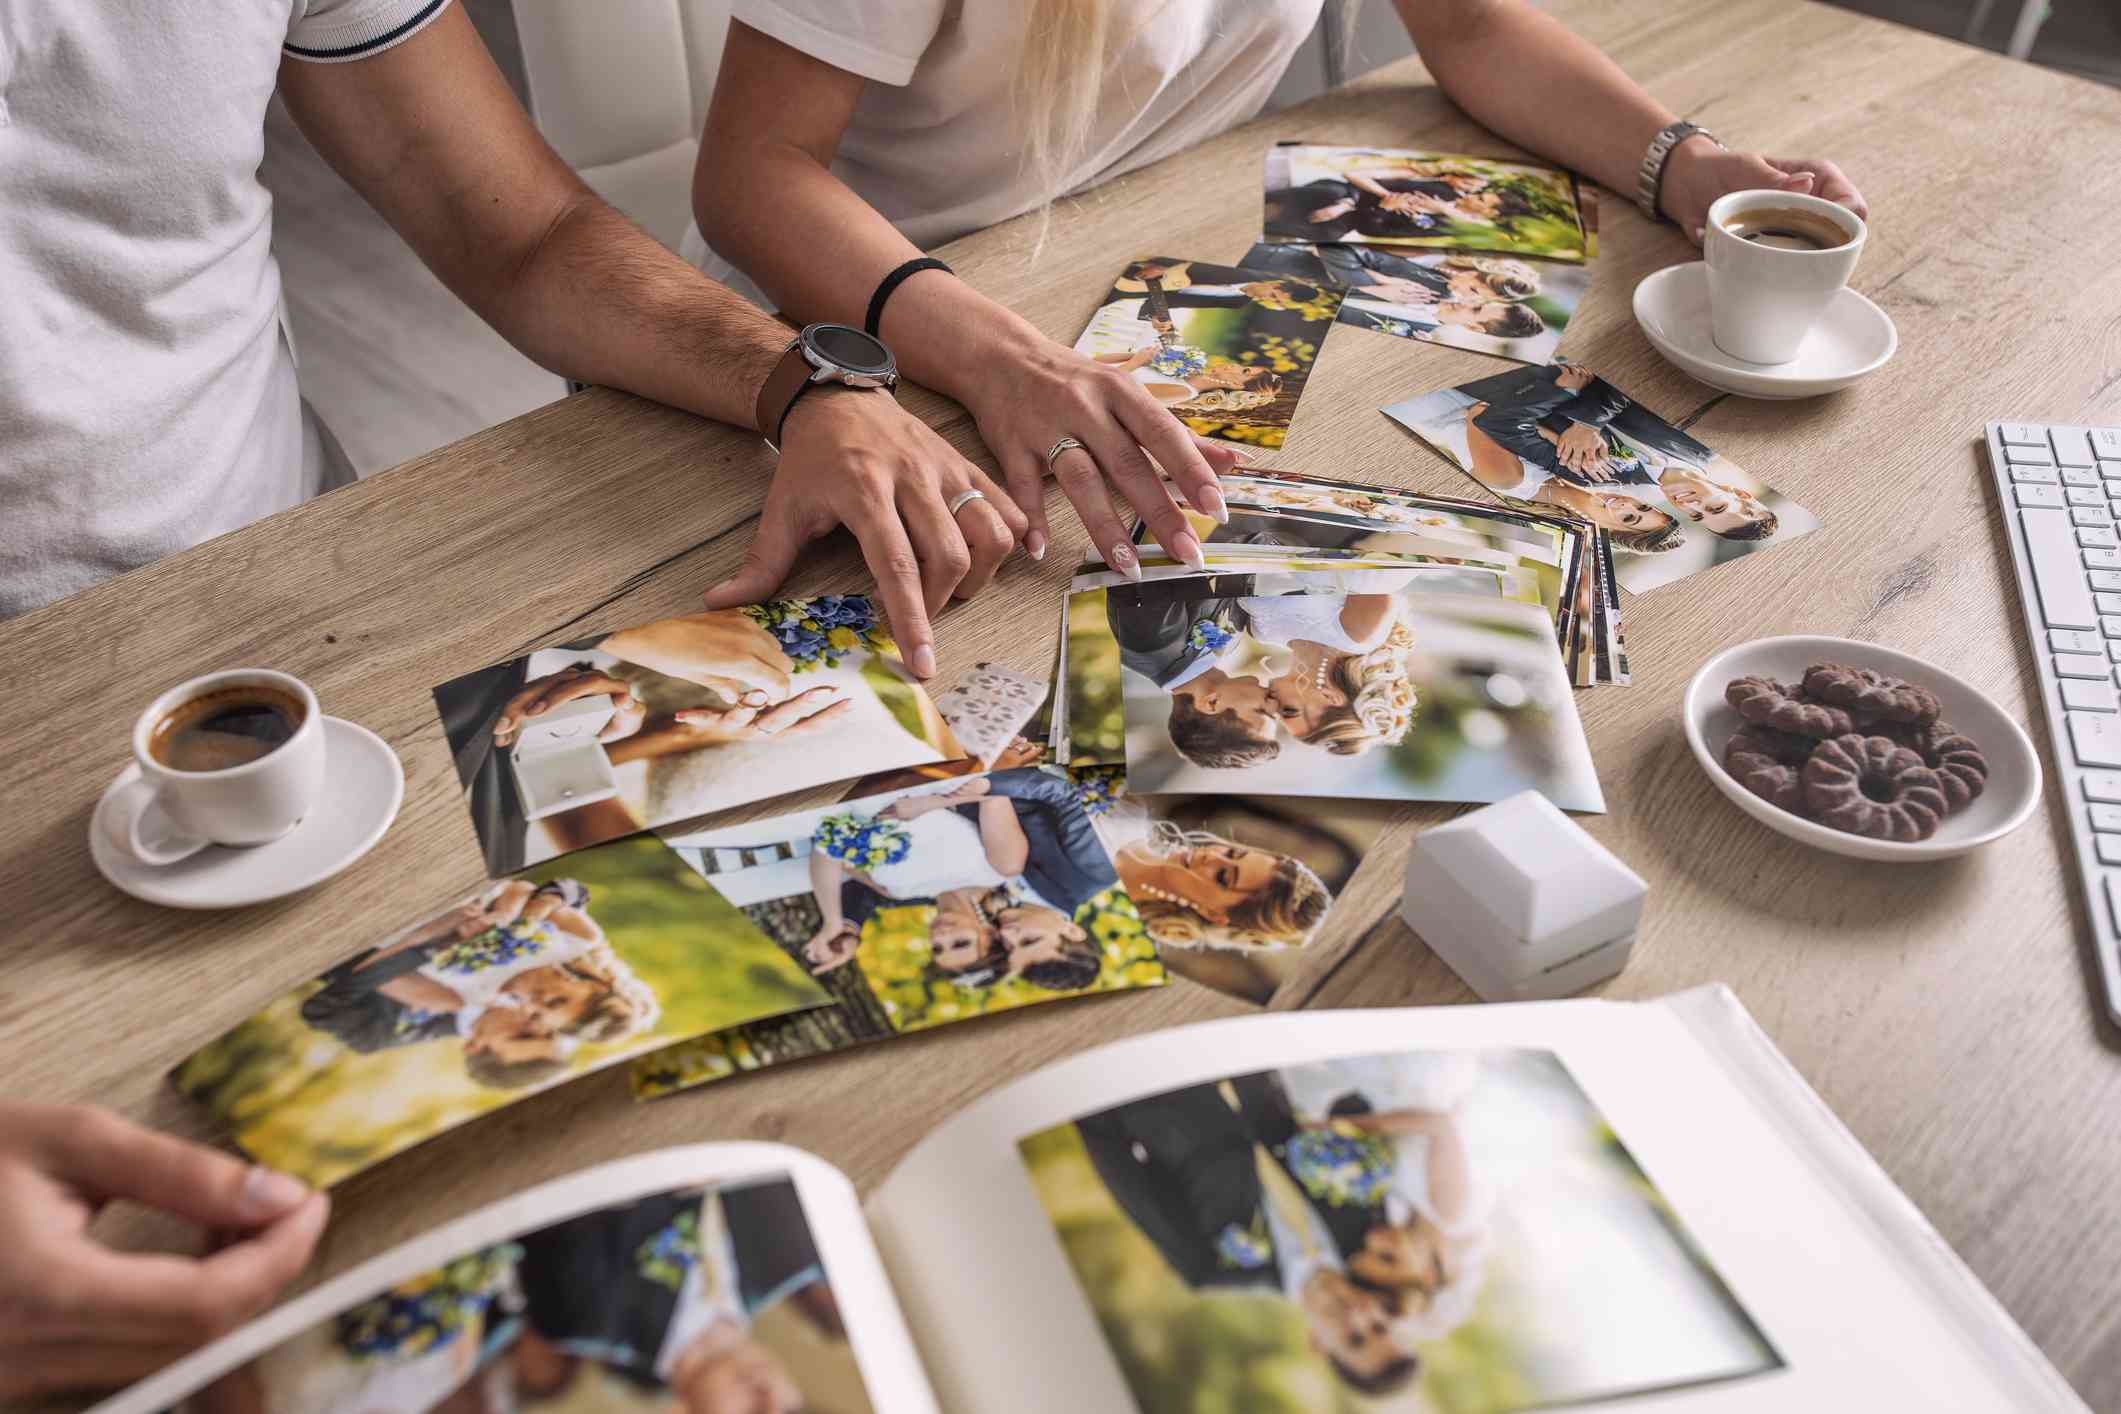 Couple scrapbooking at dining table